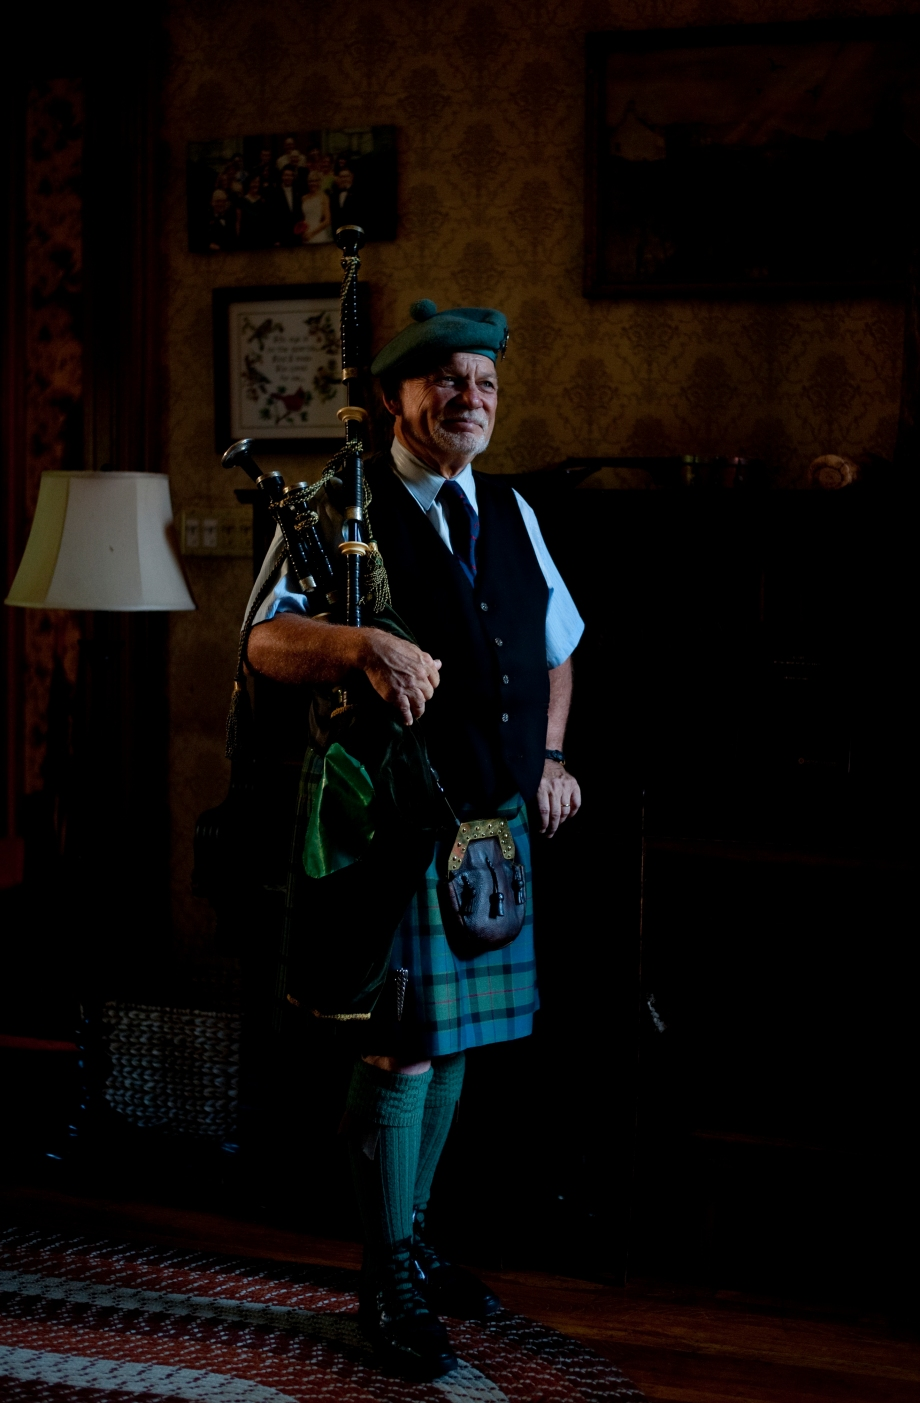 George Balderose poses for a portrait outside of his home on the North Side on Friday, June 6, 2014. Balderose, who has been playing the bagpipes for 40 years and is the director of the Balmoral School of Piping, played a concert Friday evening in Gibsonia with his fellow musician Richard Hughes, who both belong to the group Road to the Isle. (EMILY HARGER | PHOTO EDITOR)